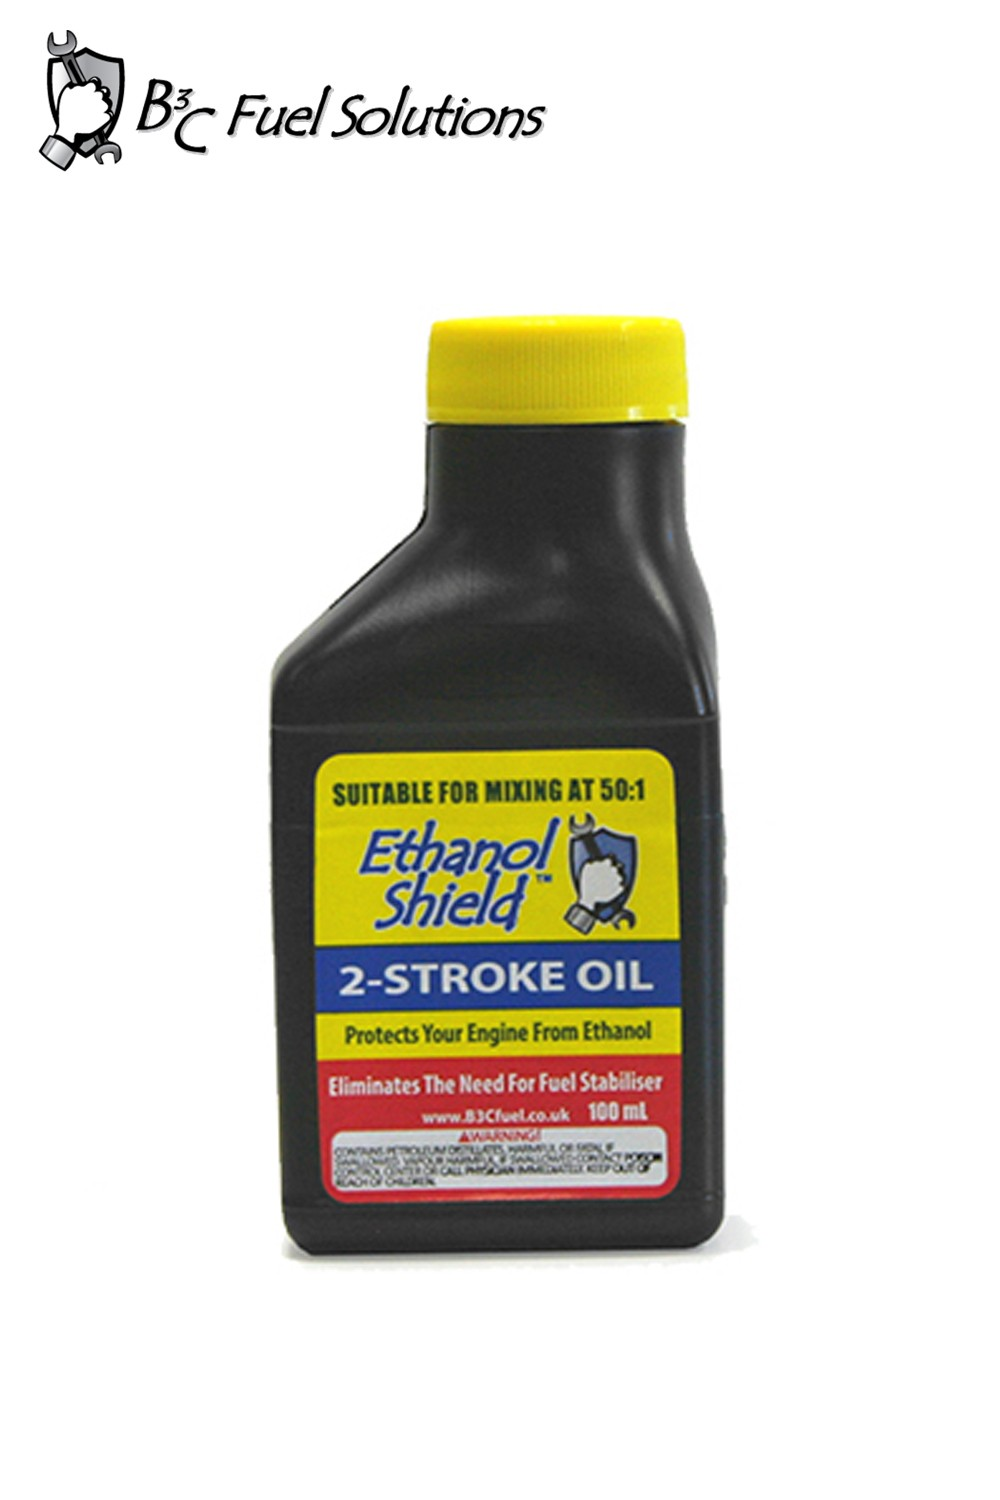 B3C Ethanol Shield 2-Stroke Oil (100ml)